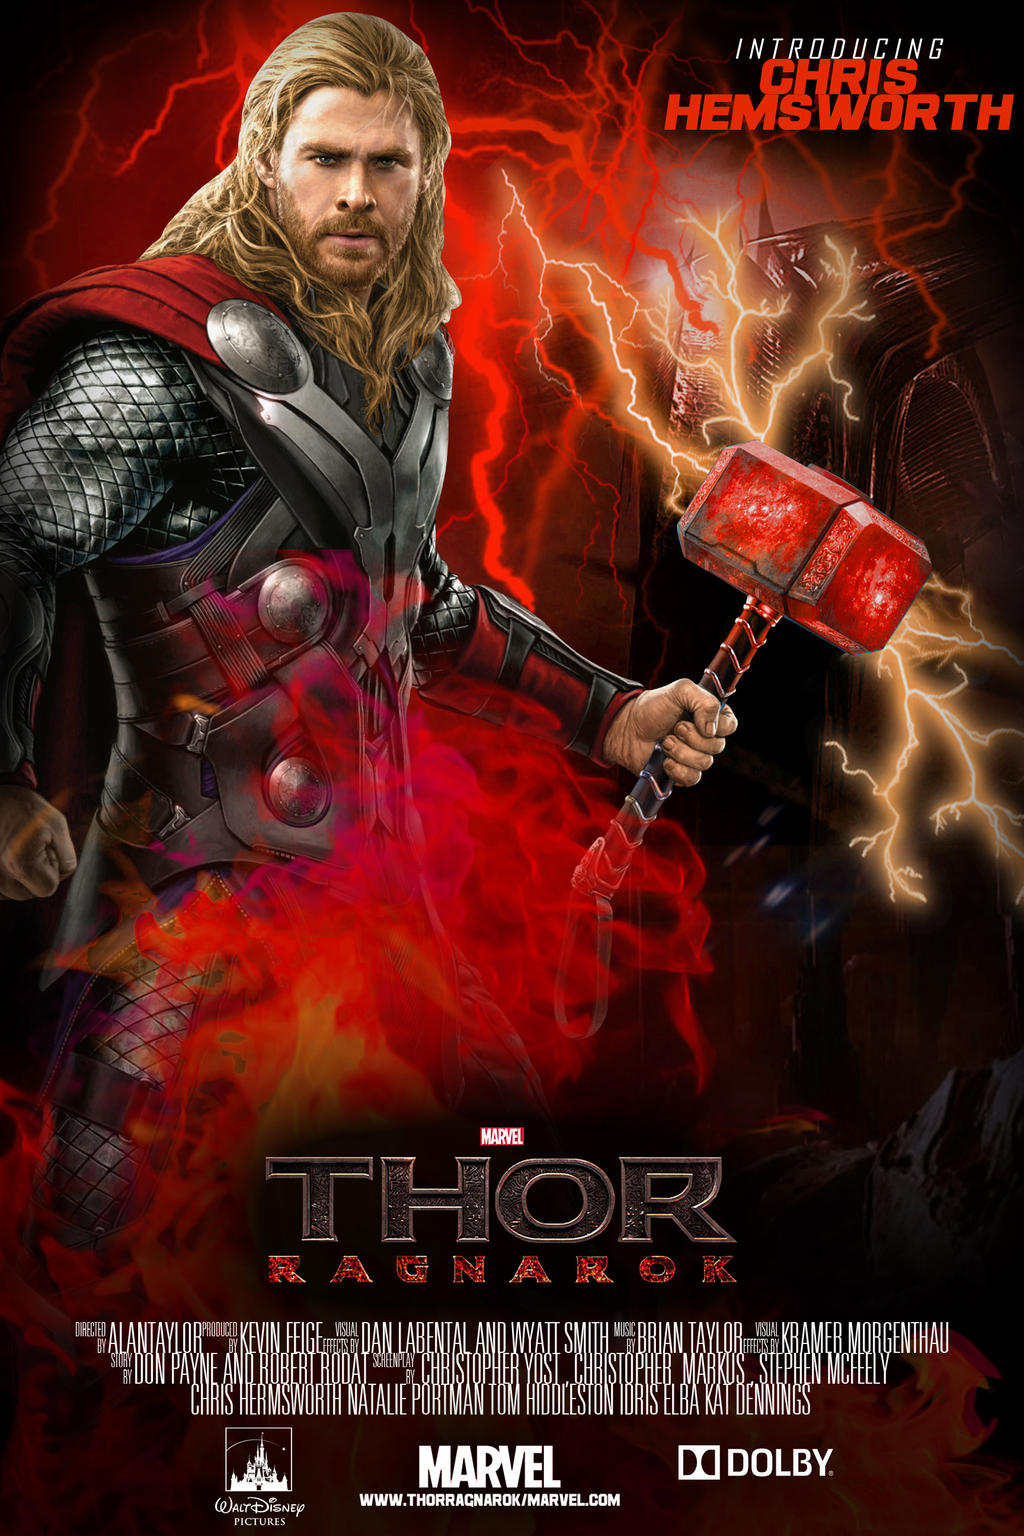 Thor Ragnarok 2017 Movie Poster By Jfourpvfx On Deviantart